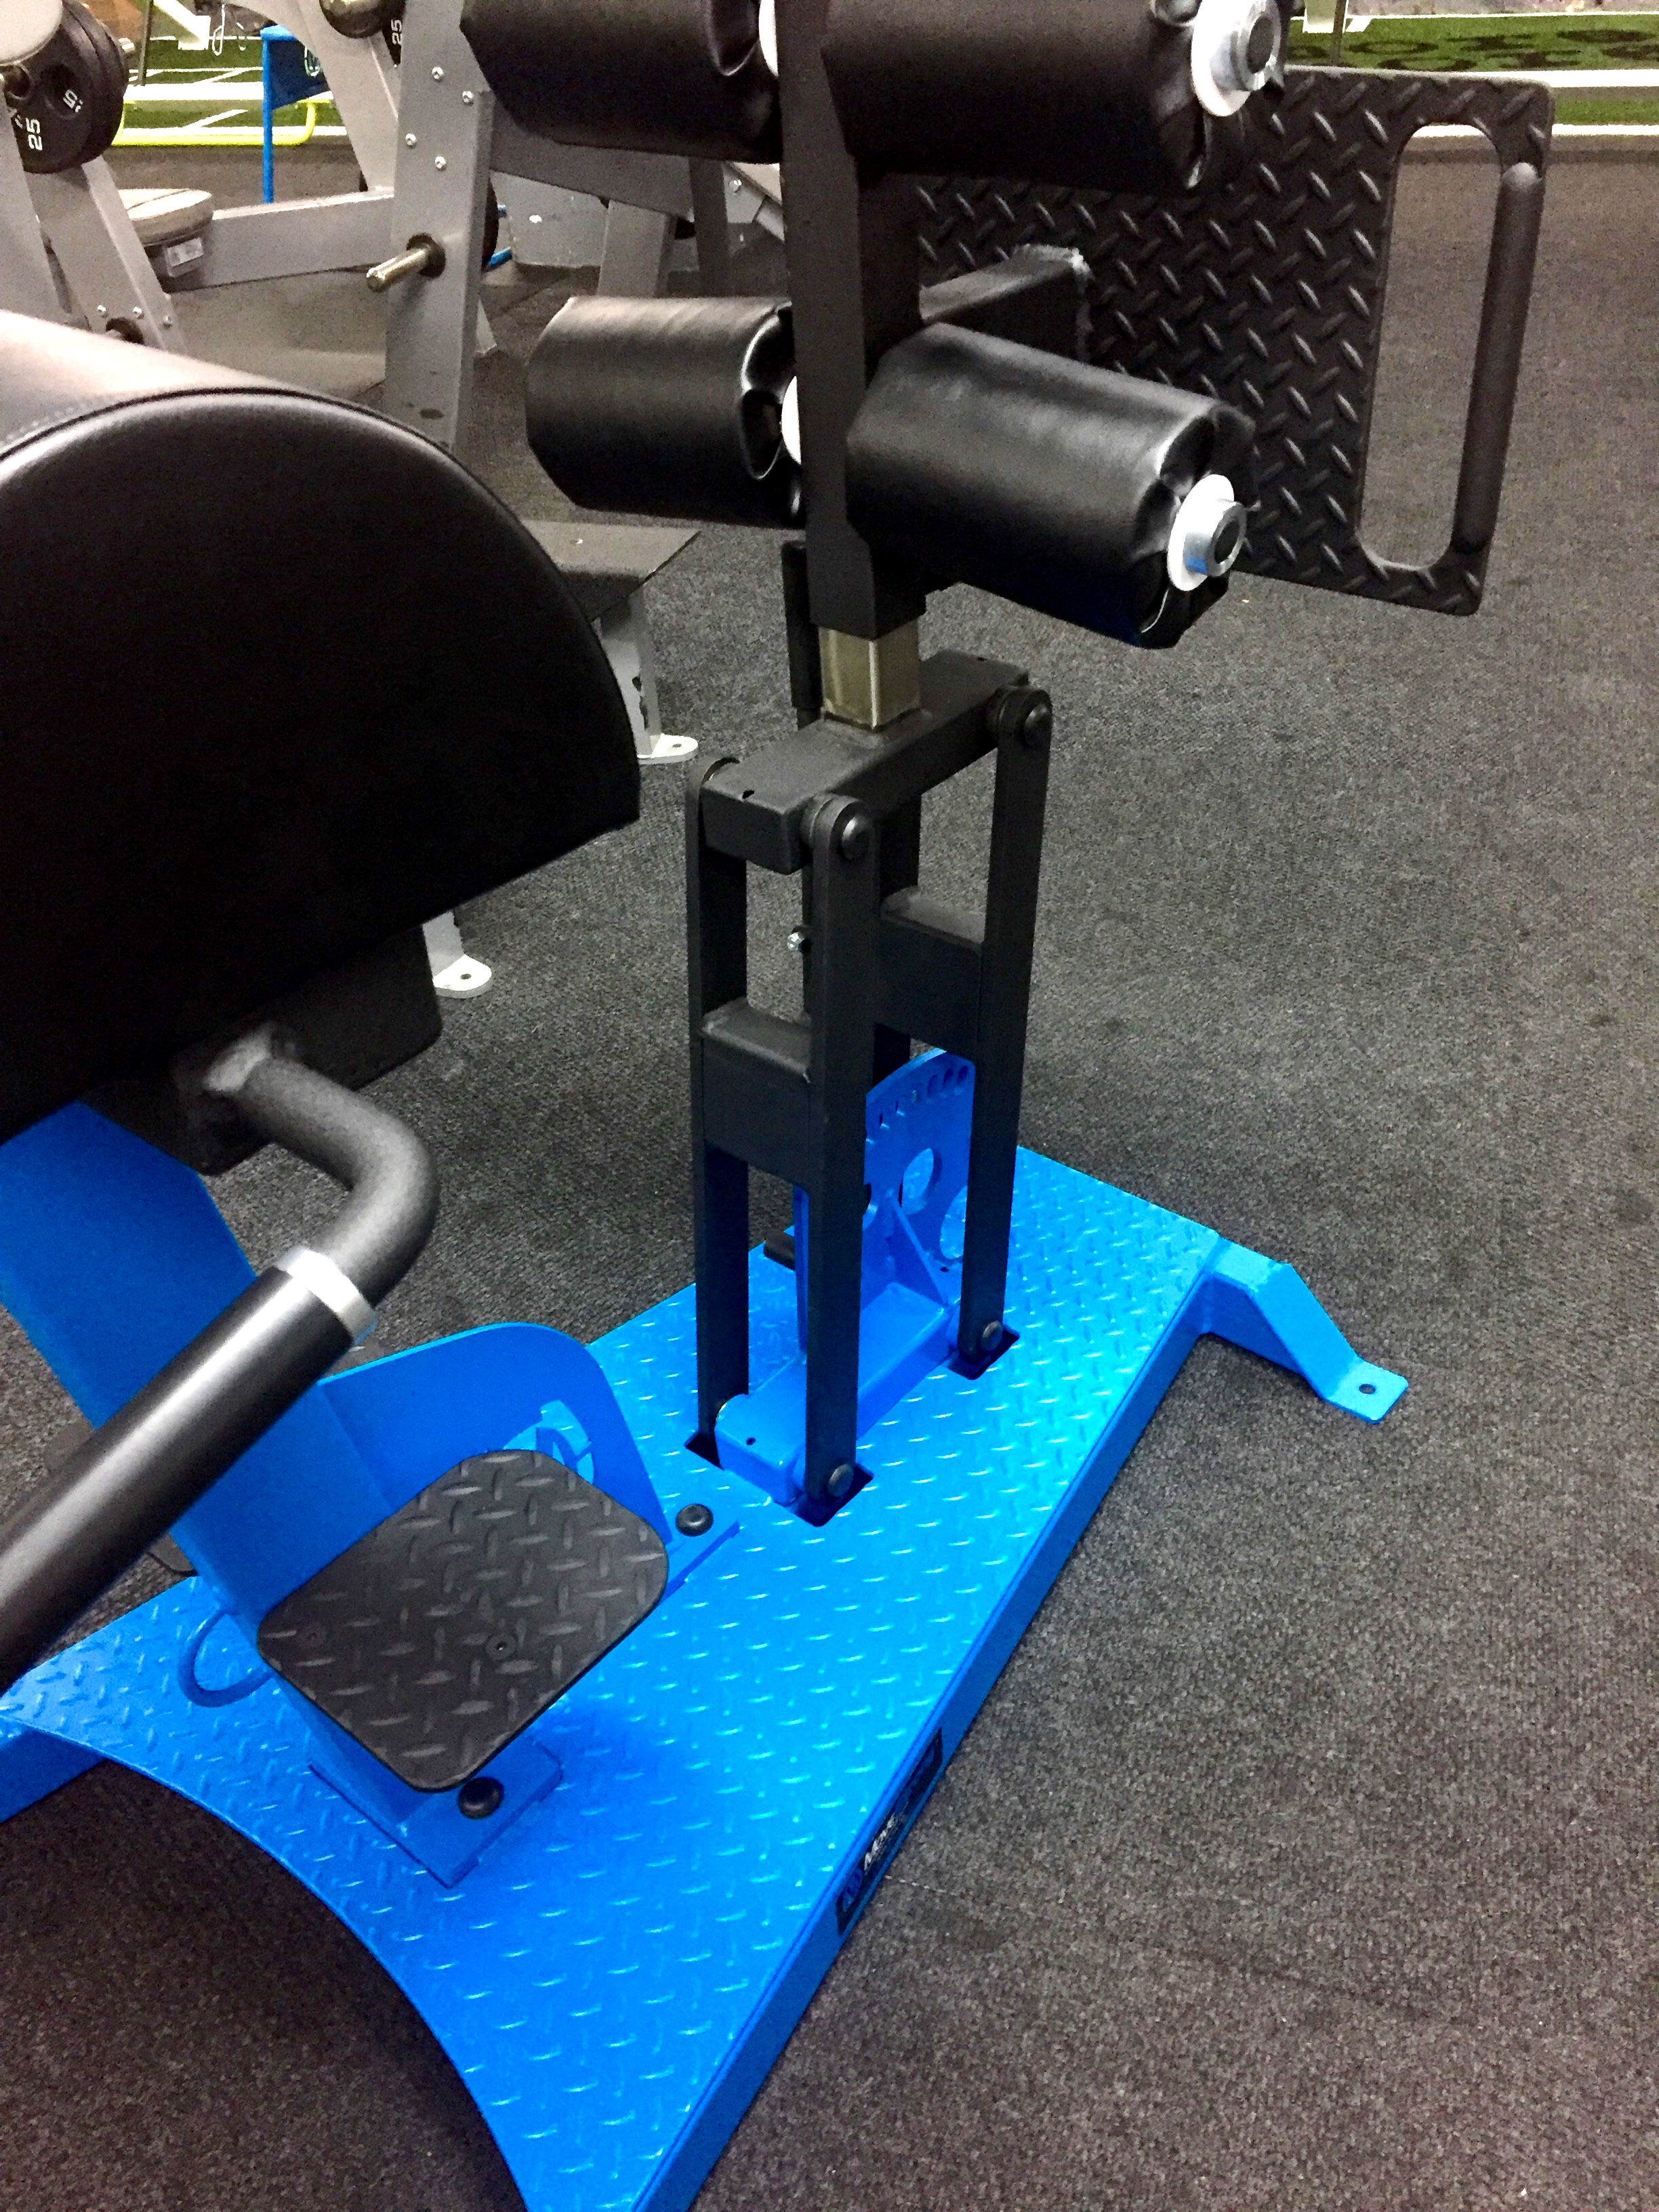 Pull lever with swing design